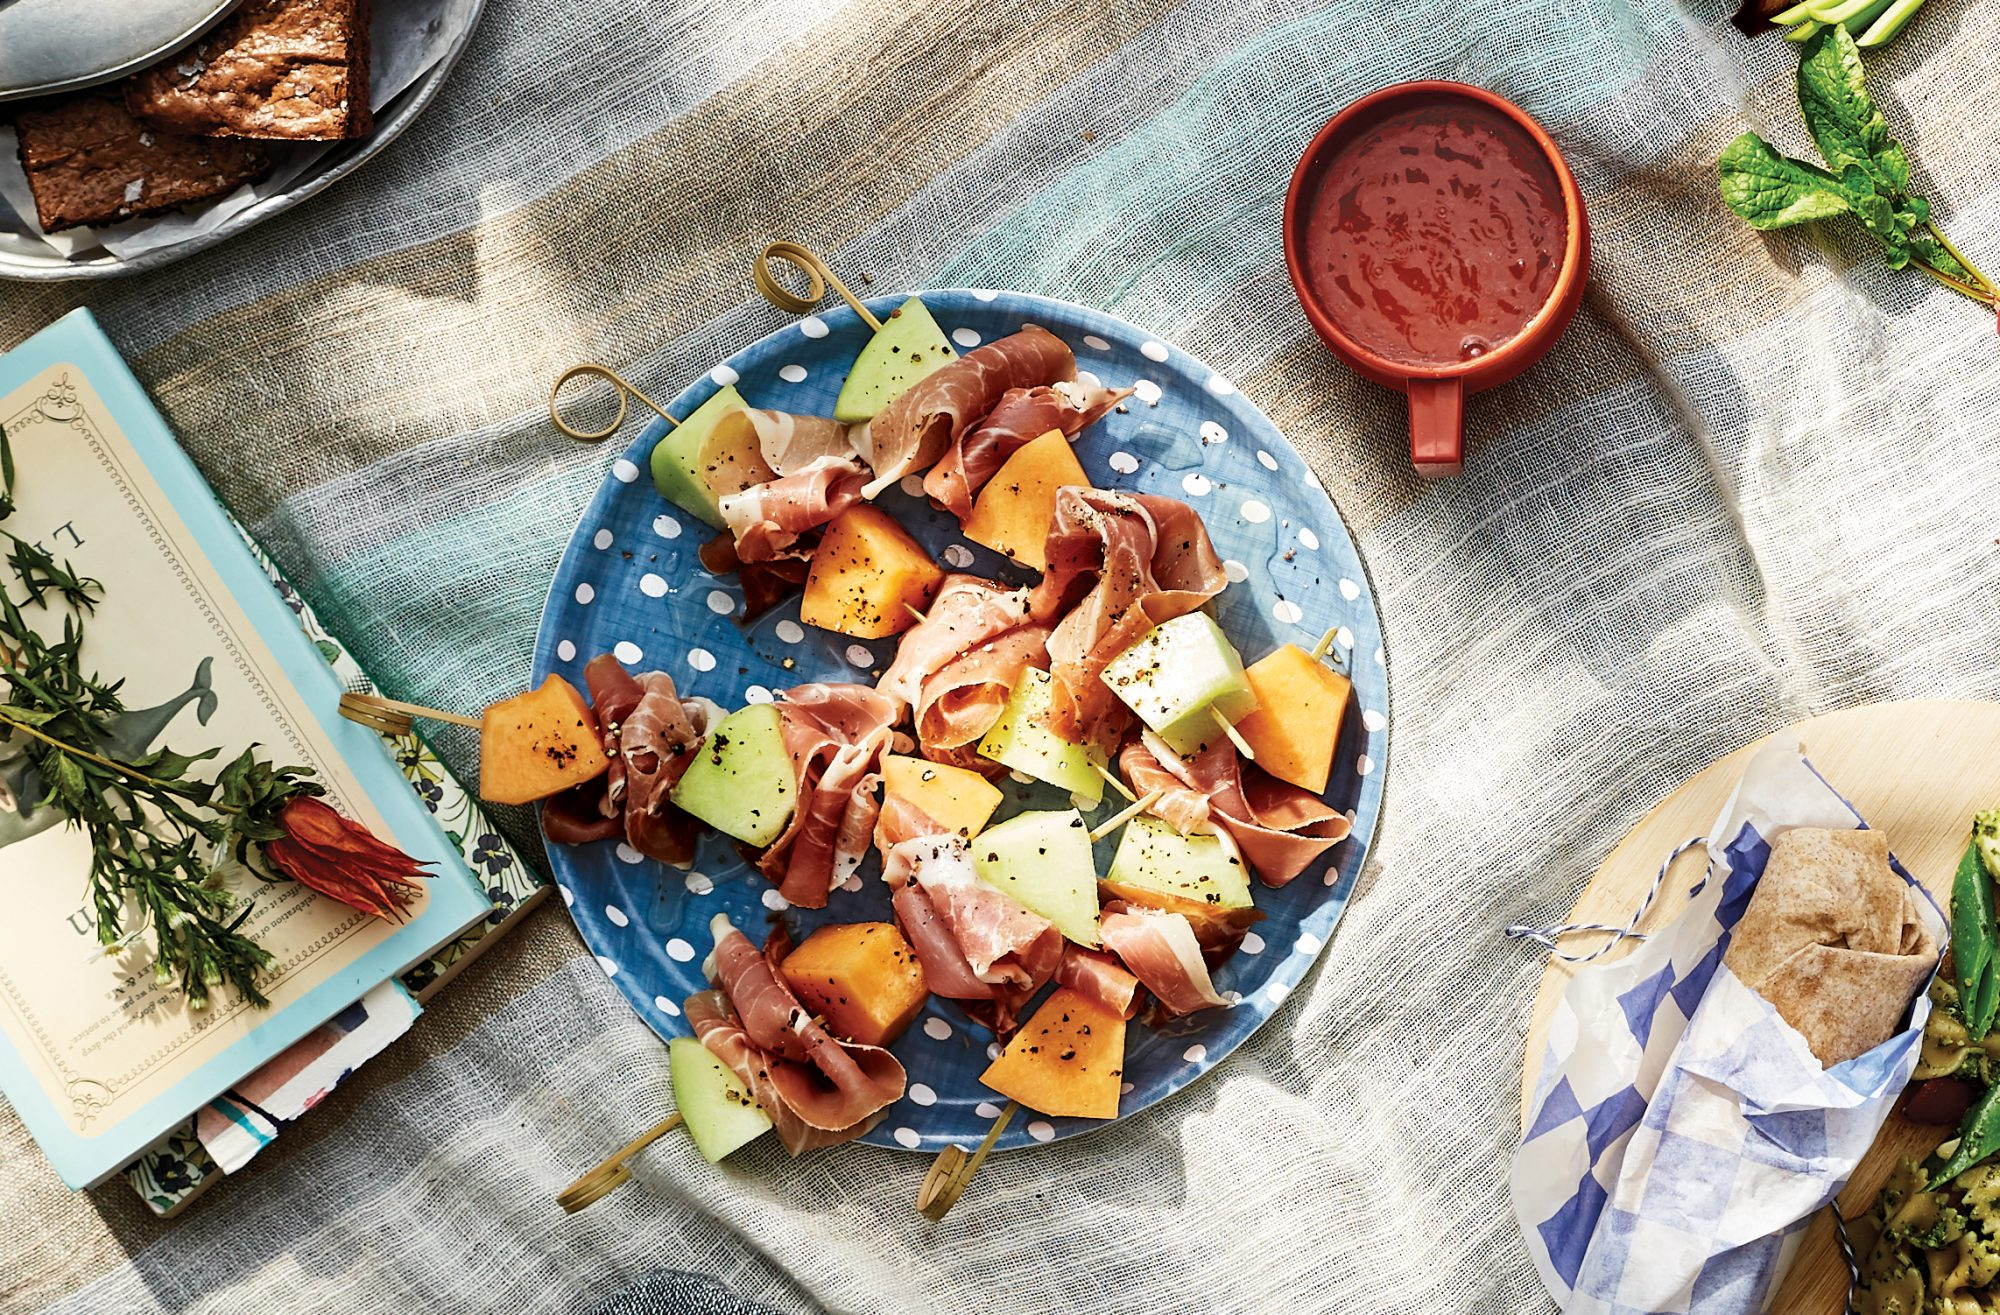 melon-prosciutto-skewer-picnic-recipes